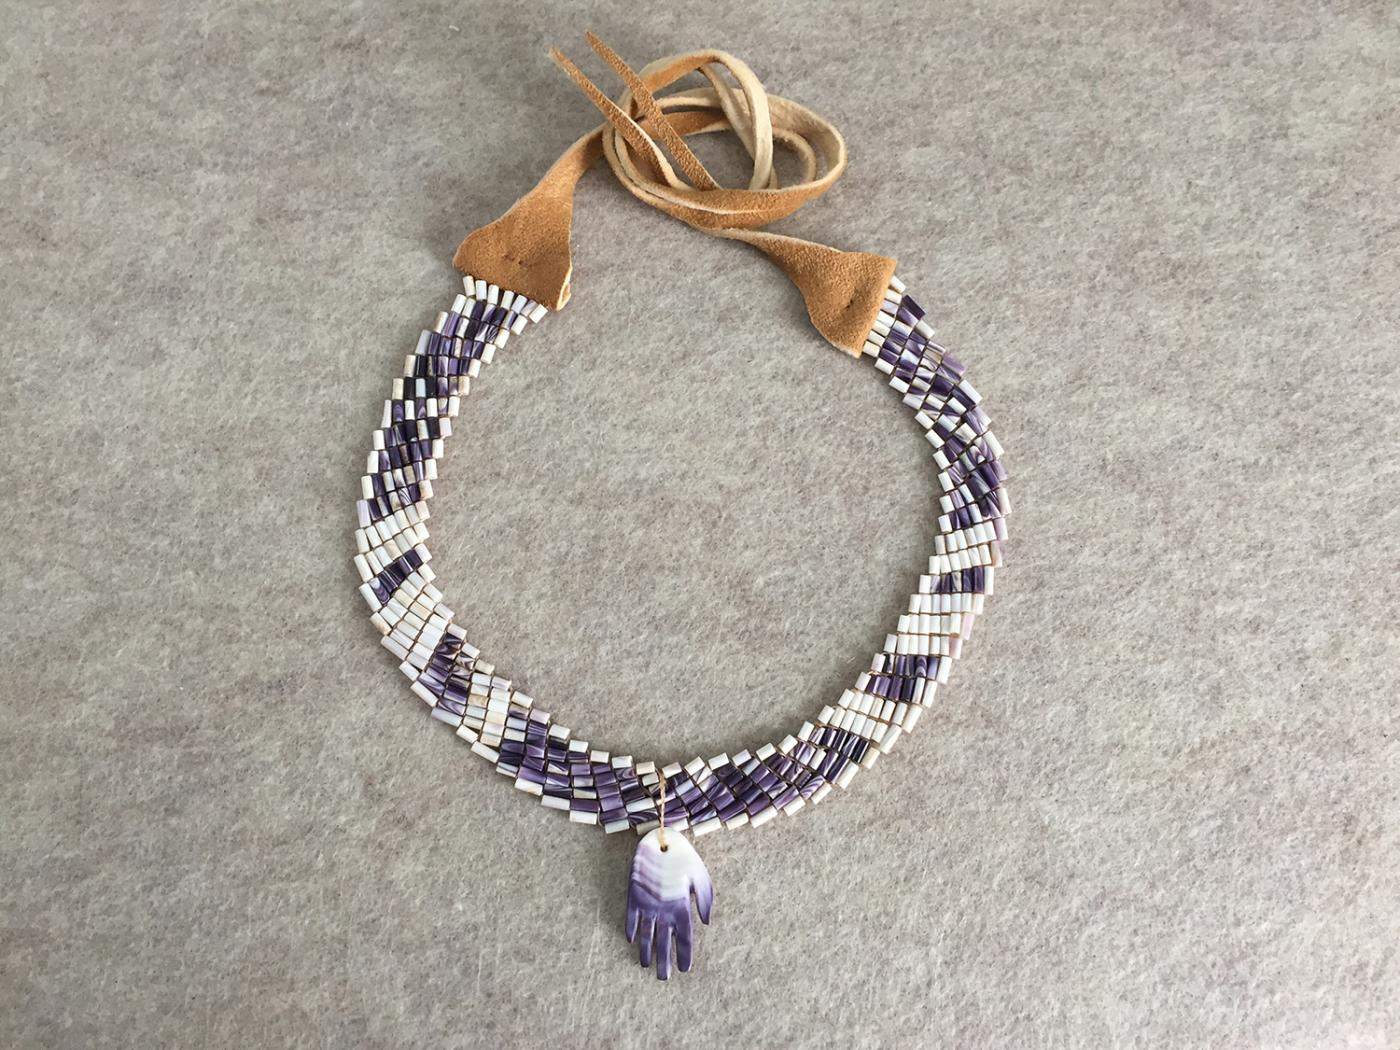 A stone and leather collar, or necklace.